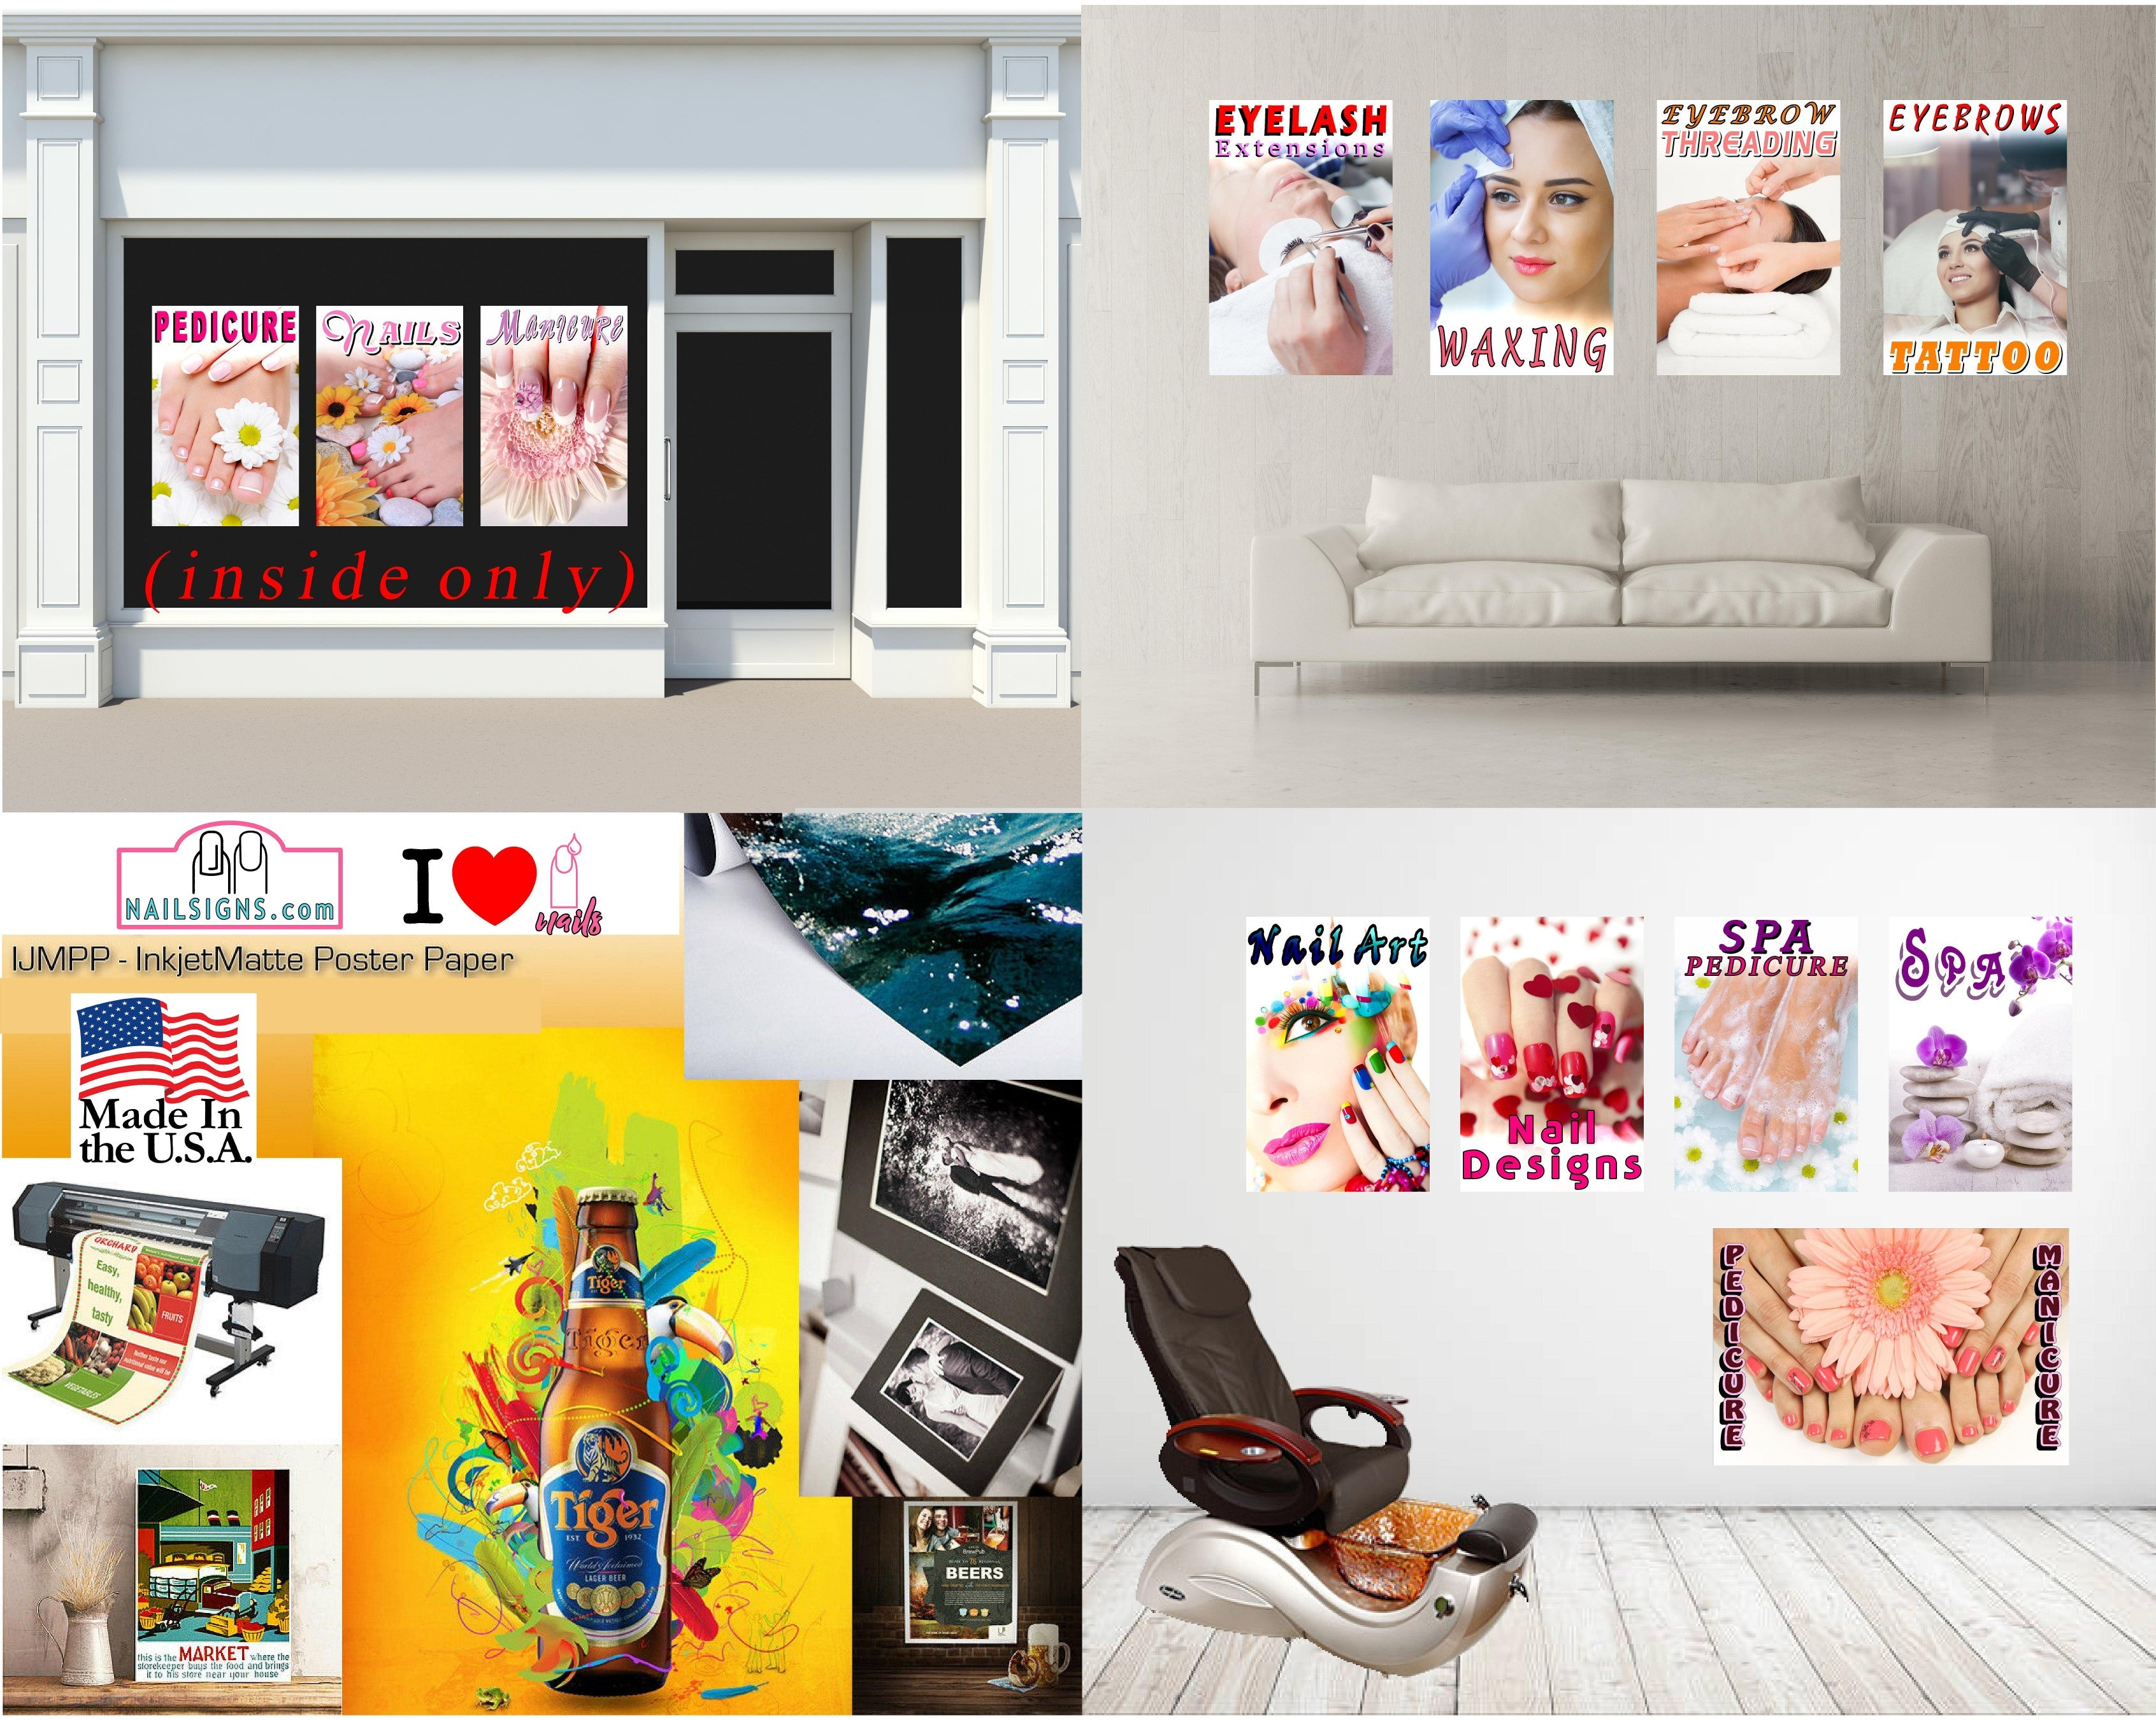 Gel 10 Photo-Realistic Paper Poster Premium Matte Interior Inside Sign Nail Salon Wall Window Non-Laminated Horizontal